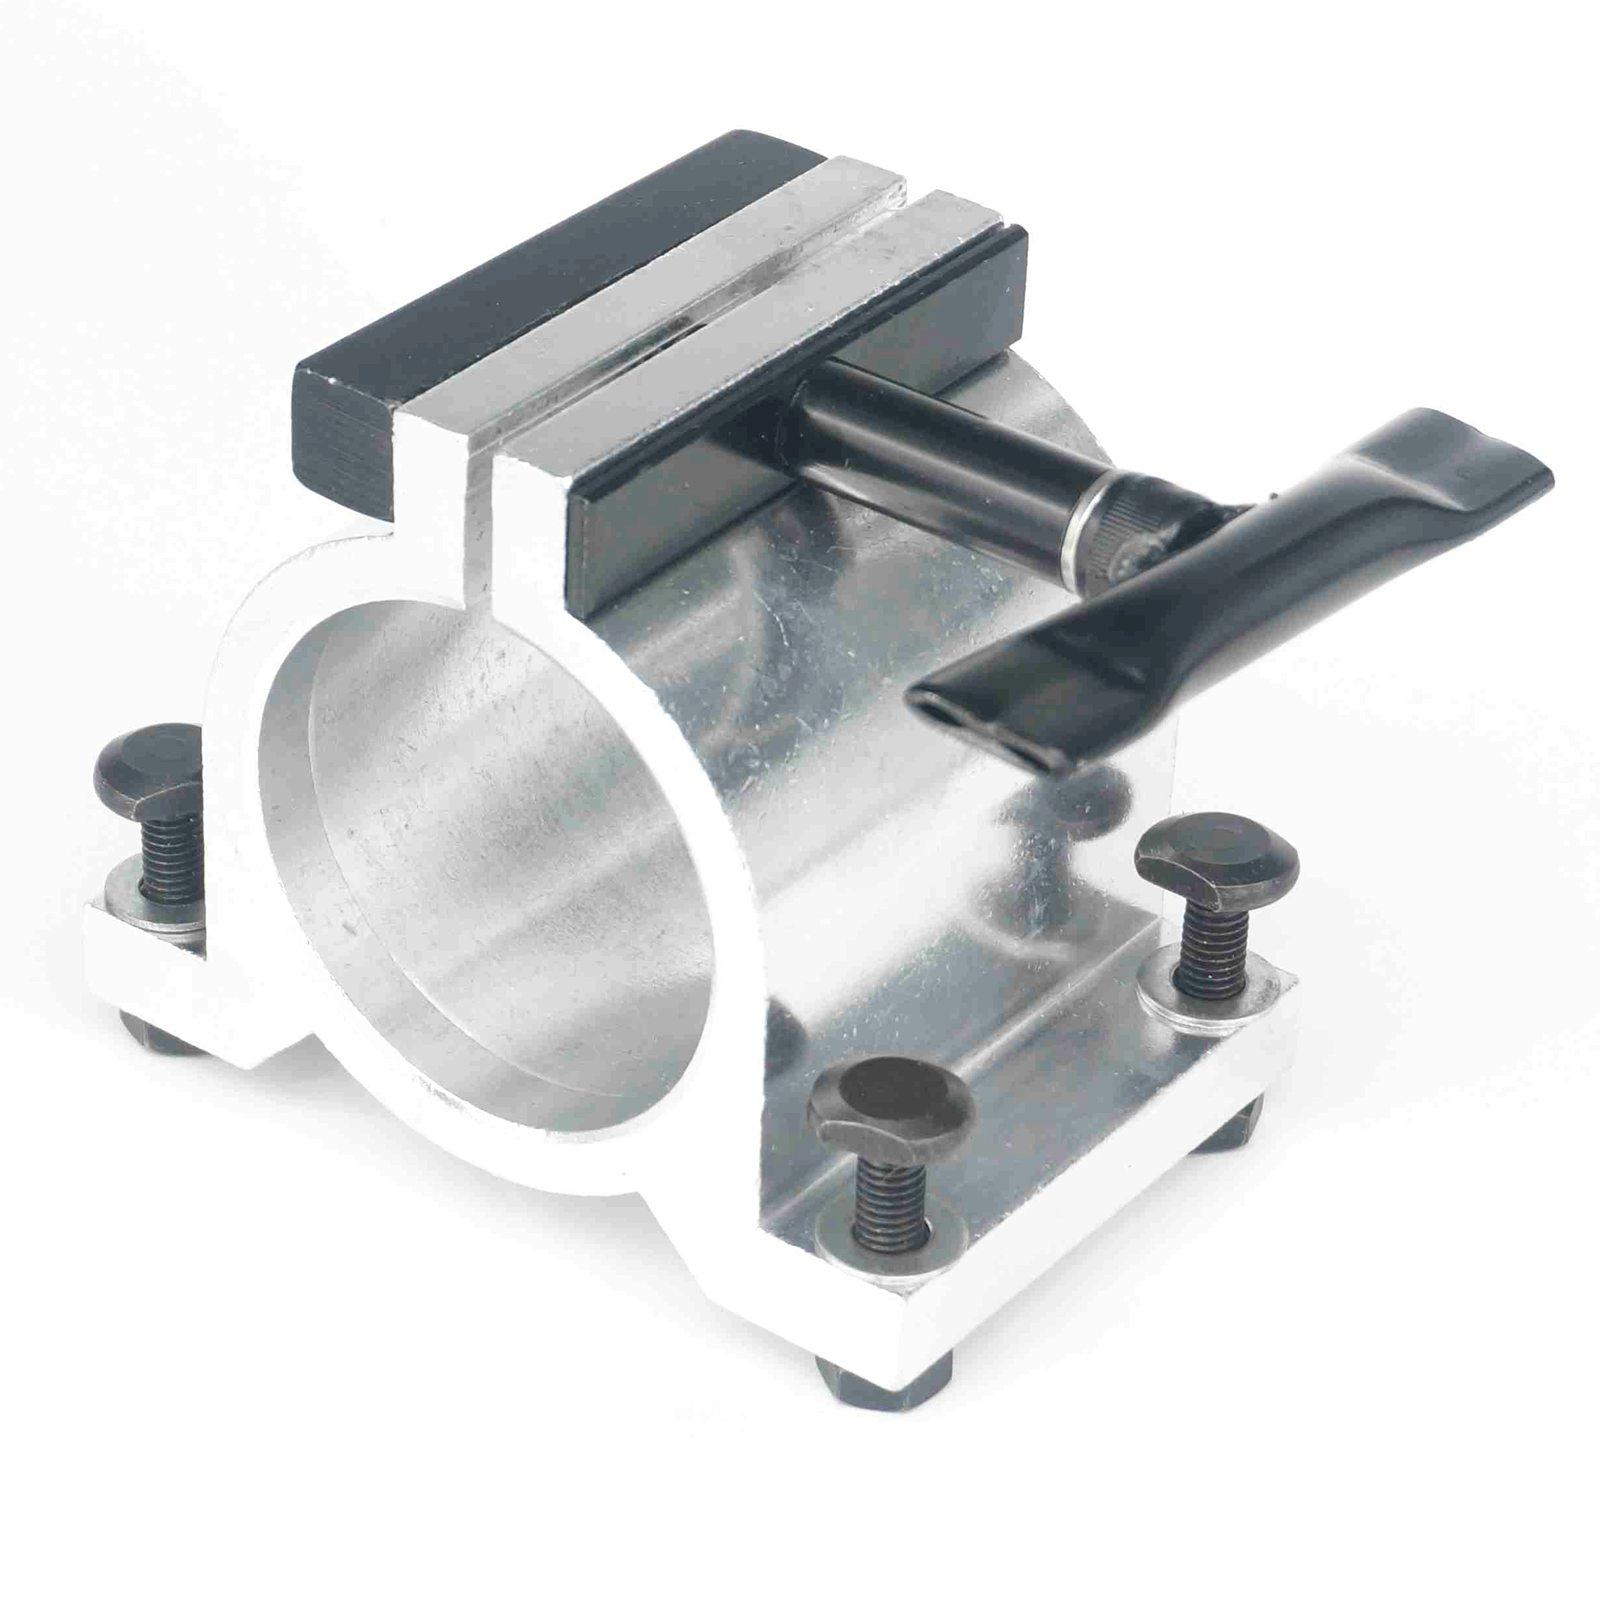 65mm Diameter Silvery Aluminum CNC Spindle Motor Holder Mount Bracket Clamp  Cast Adjustable Handle Engraving Machine